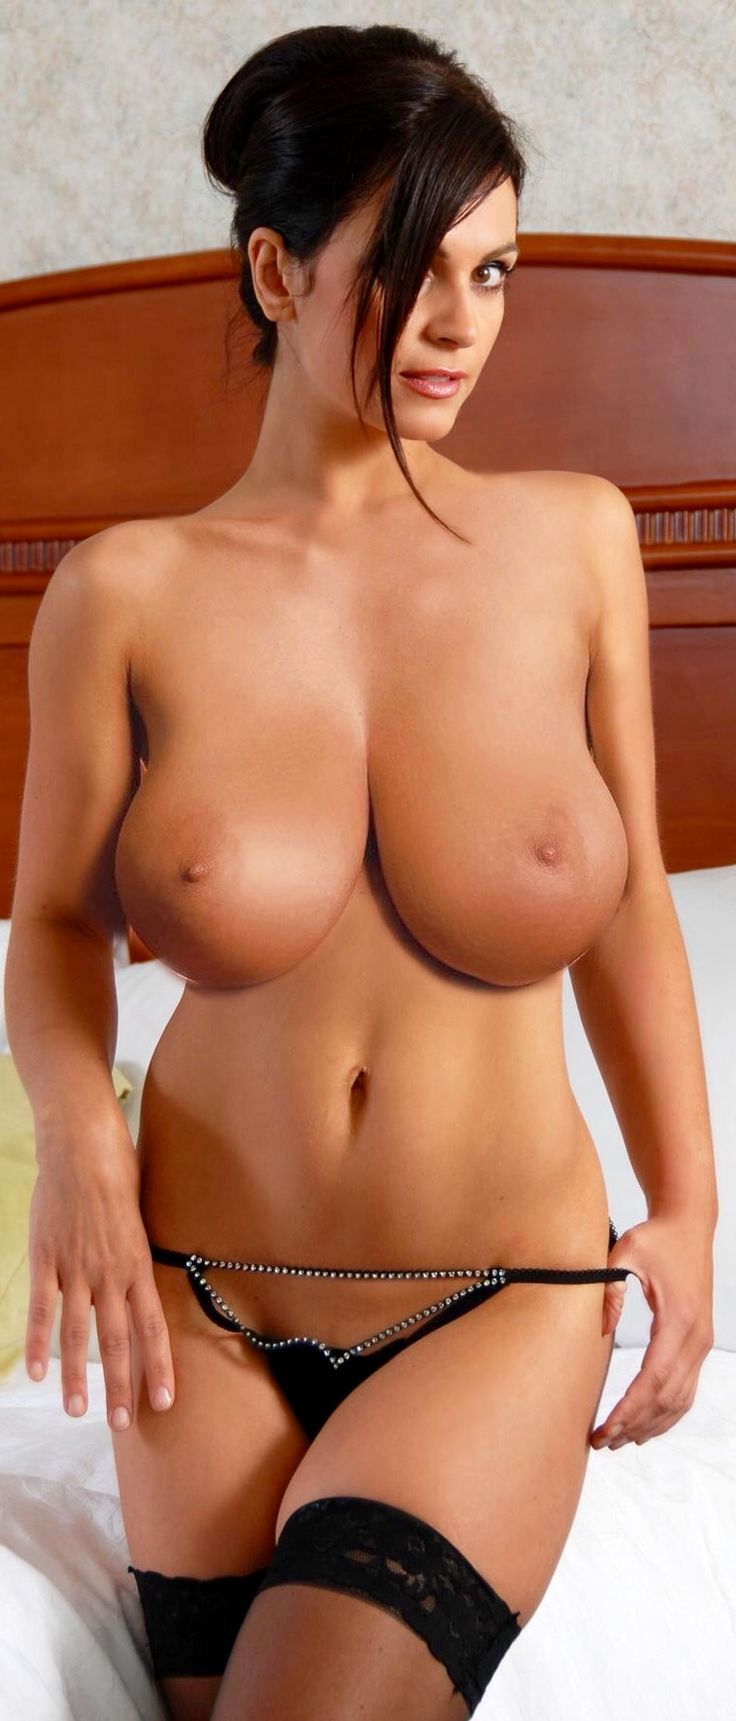 205 best big b images on pinterest | boobs, yandex and big naturals